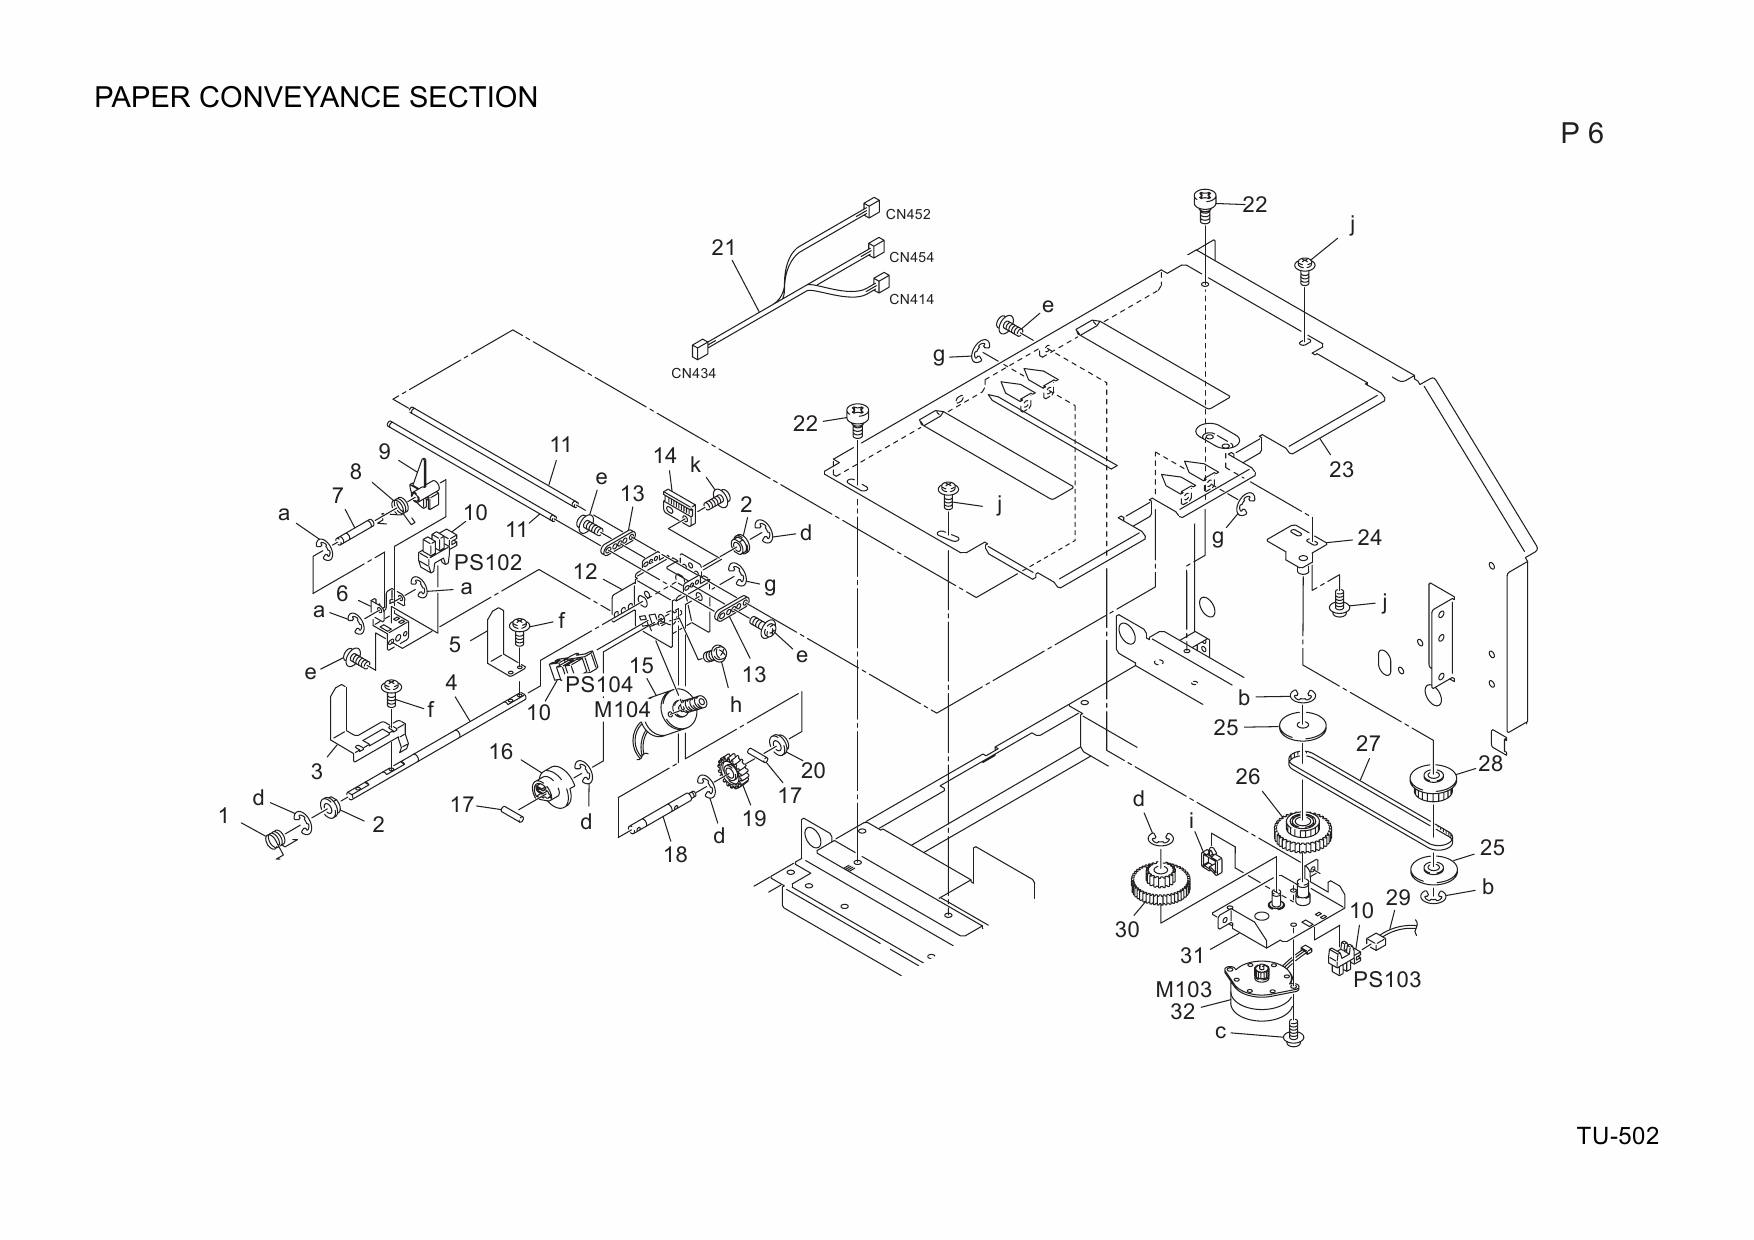 Konica-Minolta Options TU-501 A110 Parts Manual